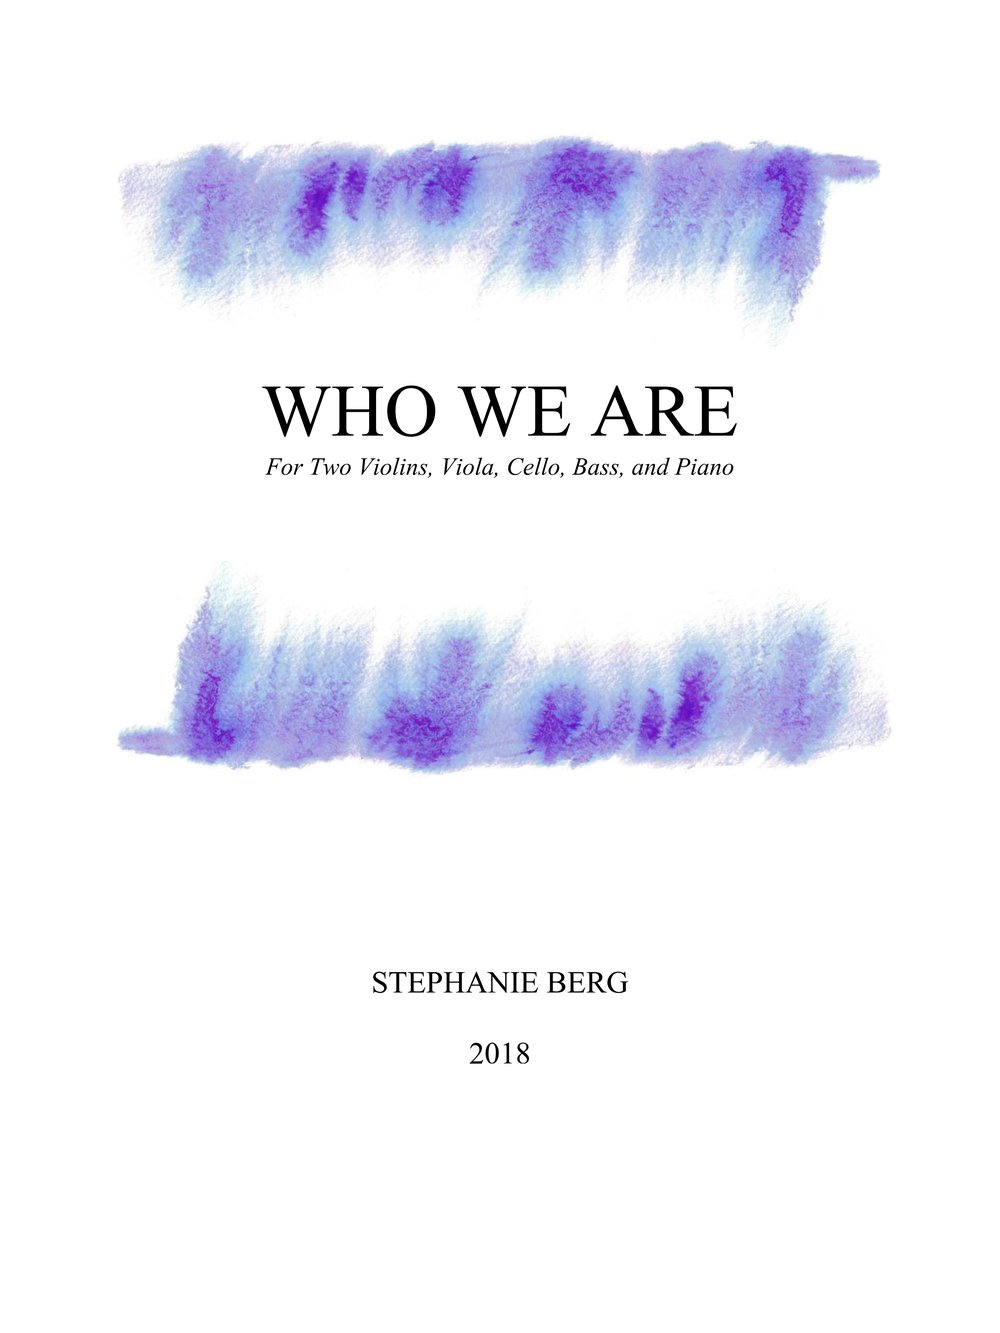 Who We Are title page.jpg